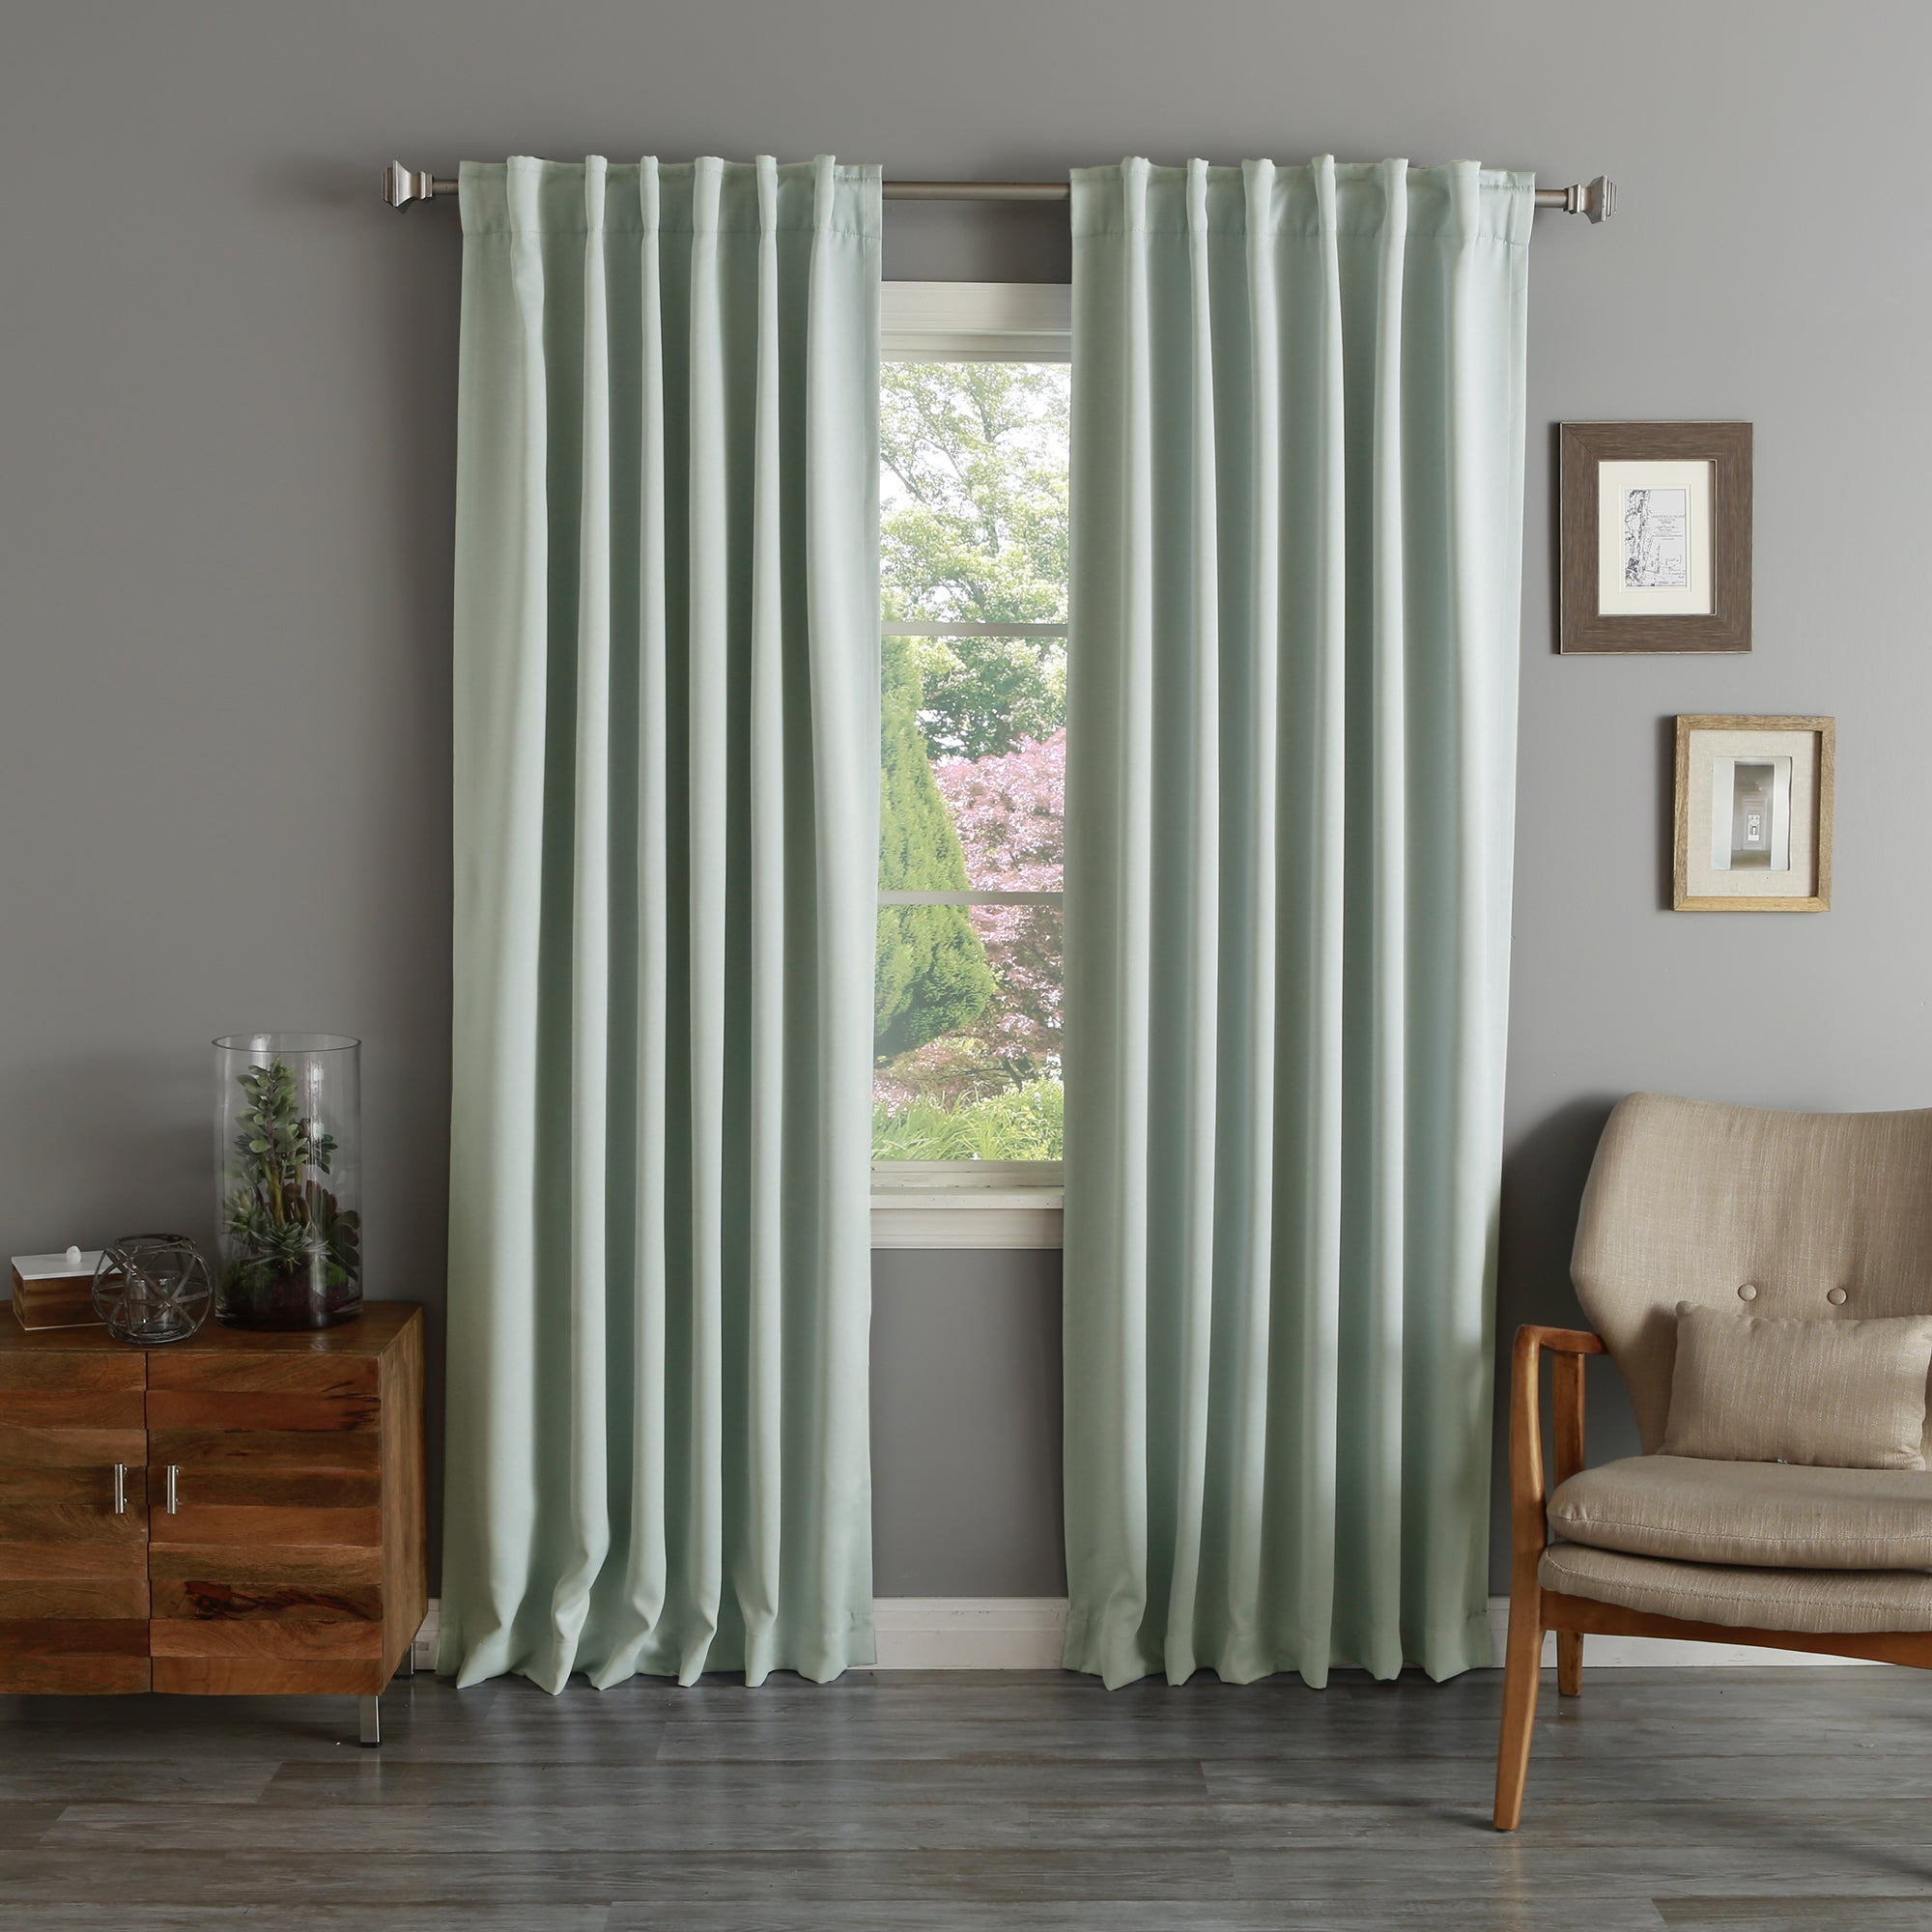 Aurora Home Rod Pocket Blackout Curtain Panel (pair) Intended For Thermal Rod Pocket Blackout Curtain Panel Pairs (View 14 of 30)